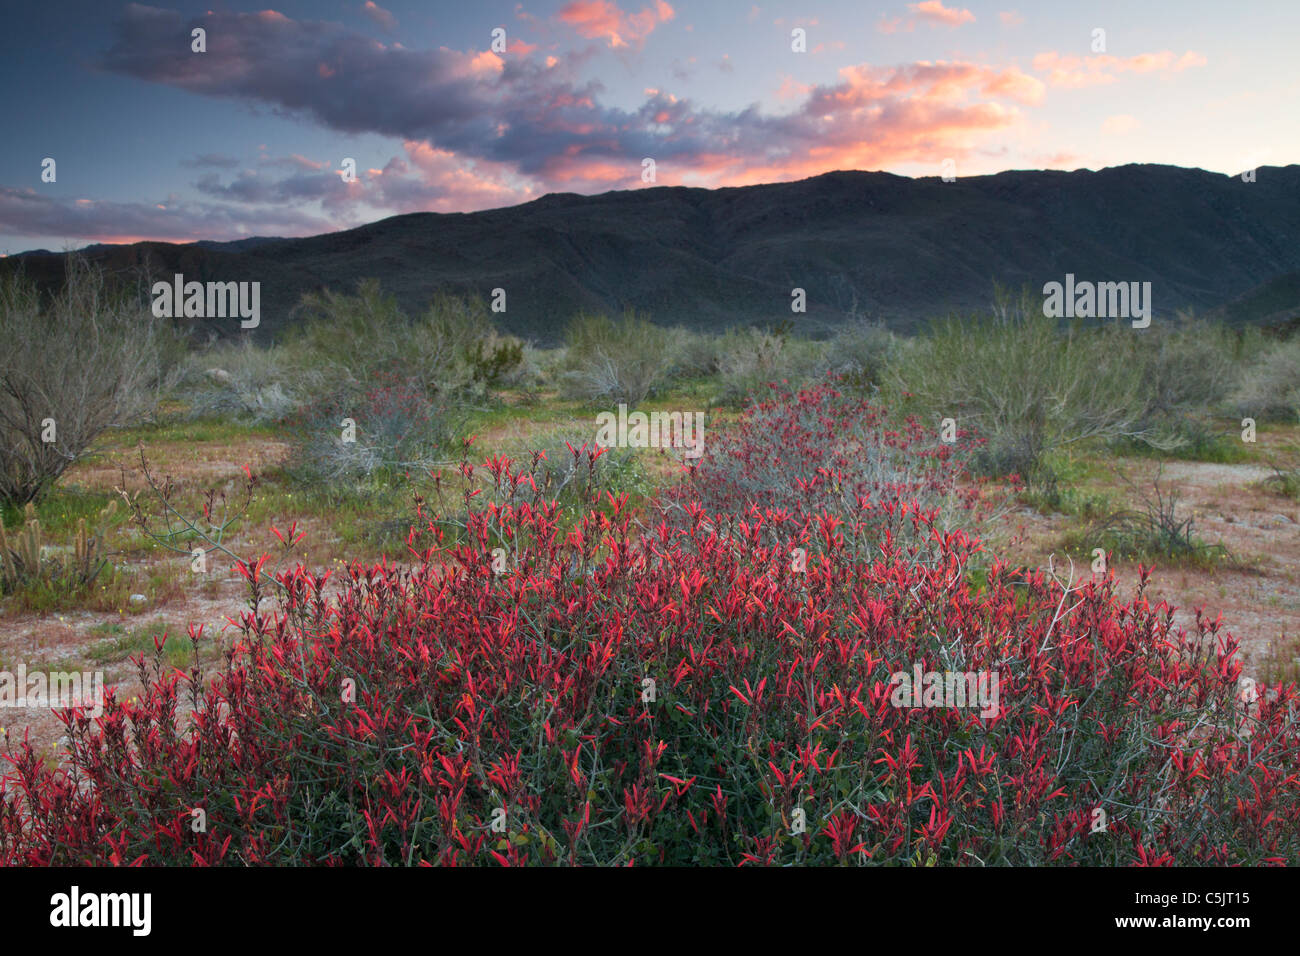 Chuparosa or Hummingbird Bush wildflowers in Anza-Borrego Desert State Park, California. - Stock Image